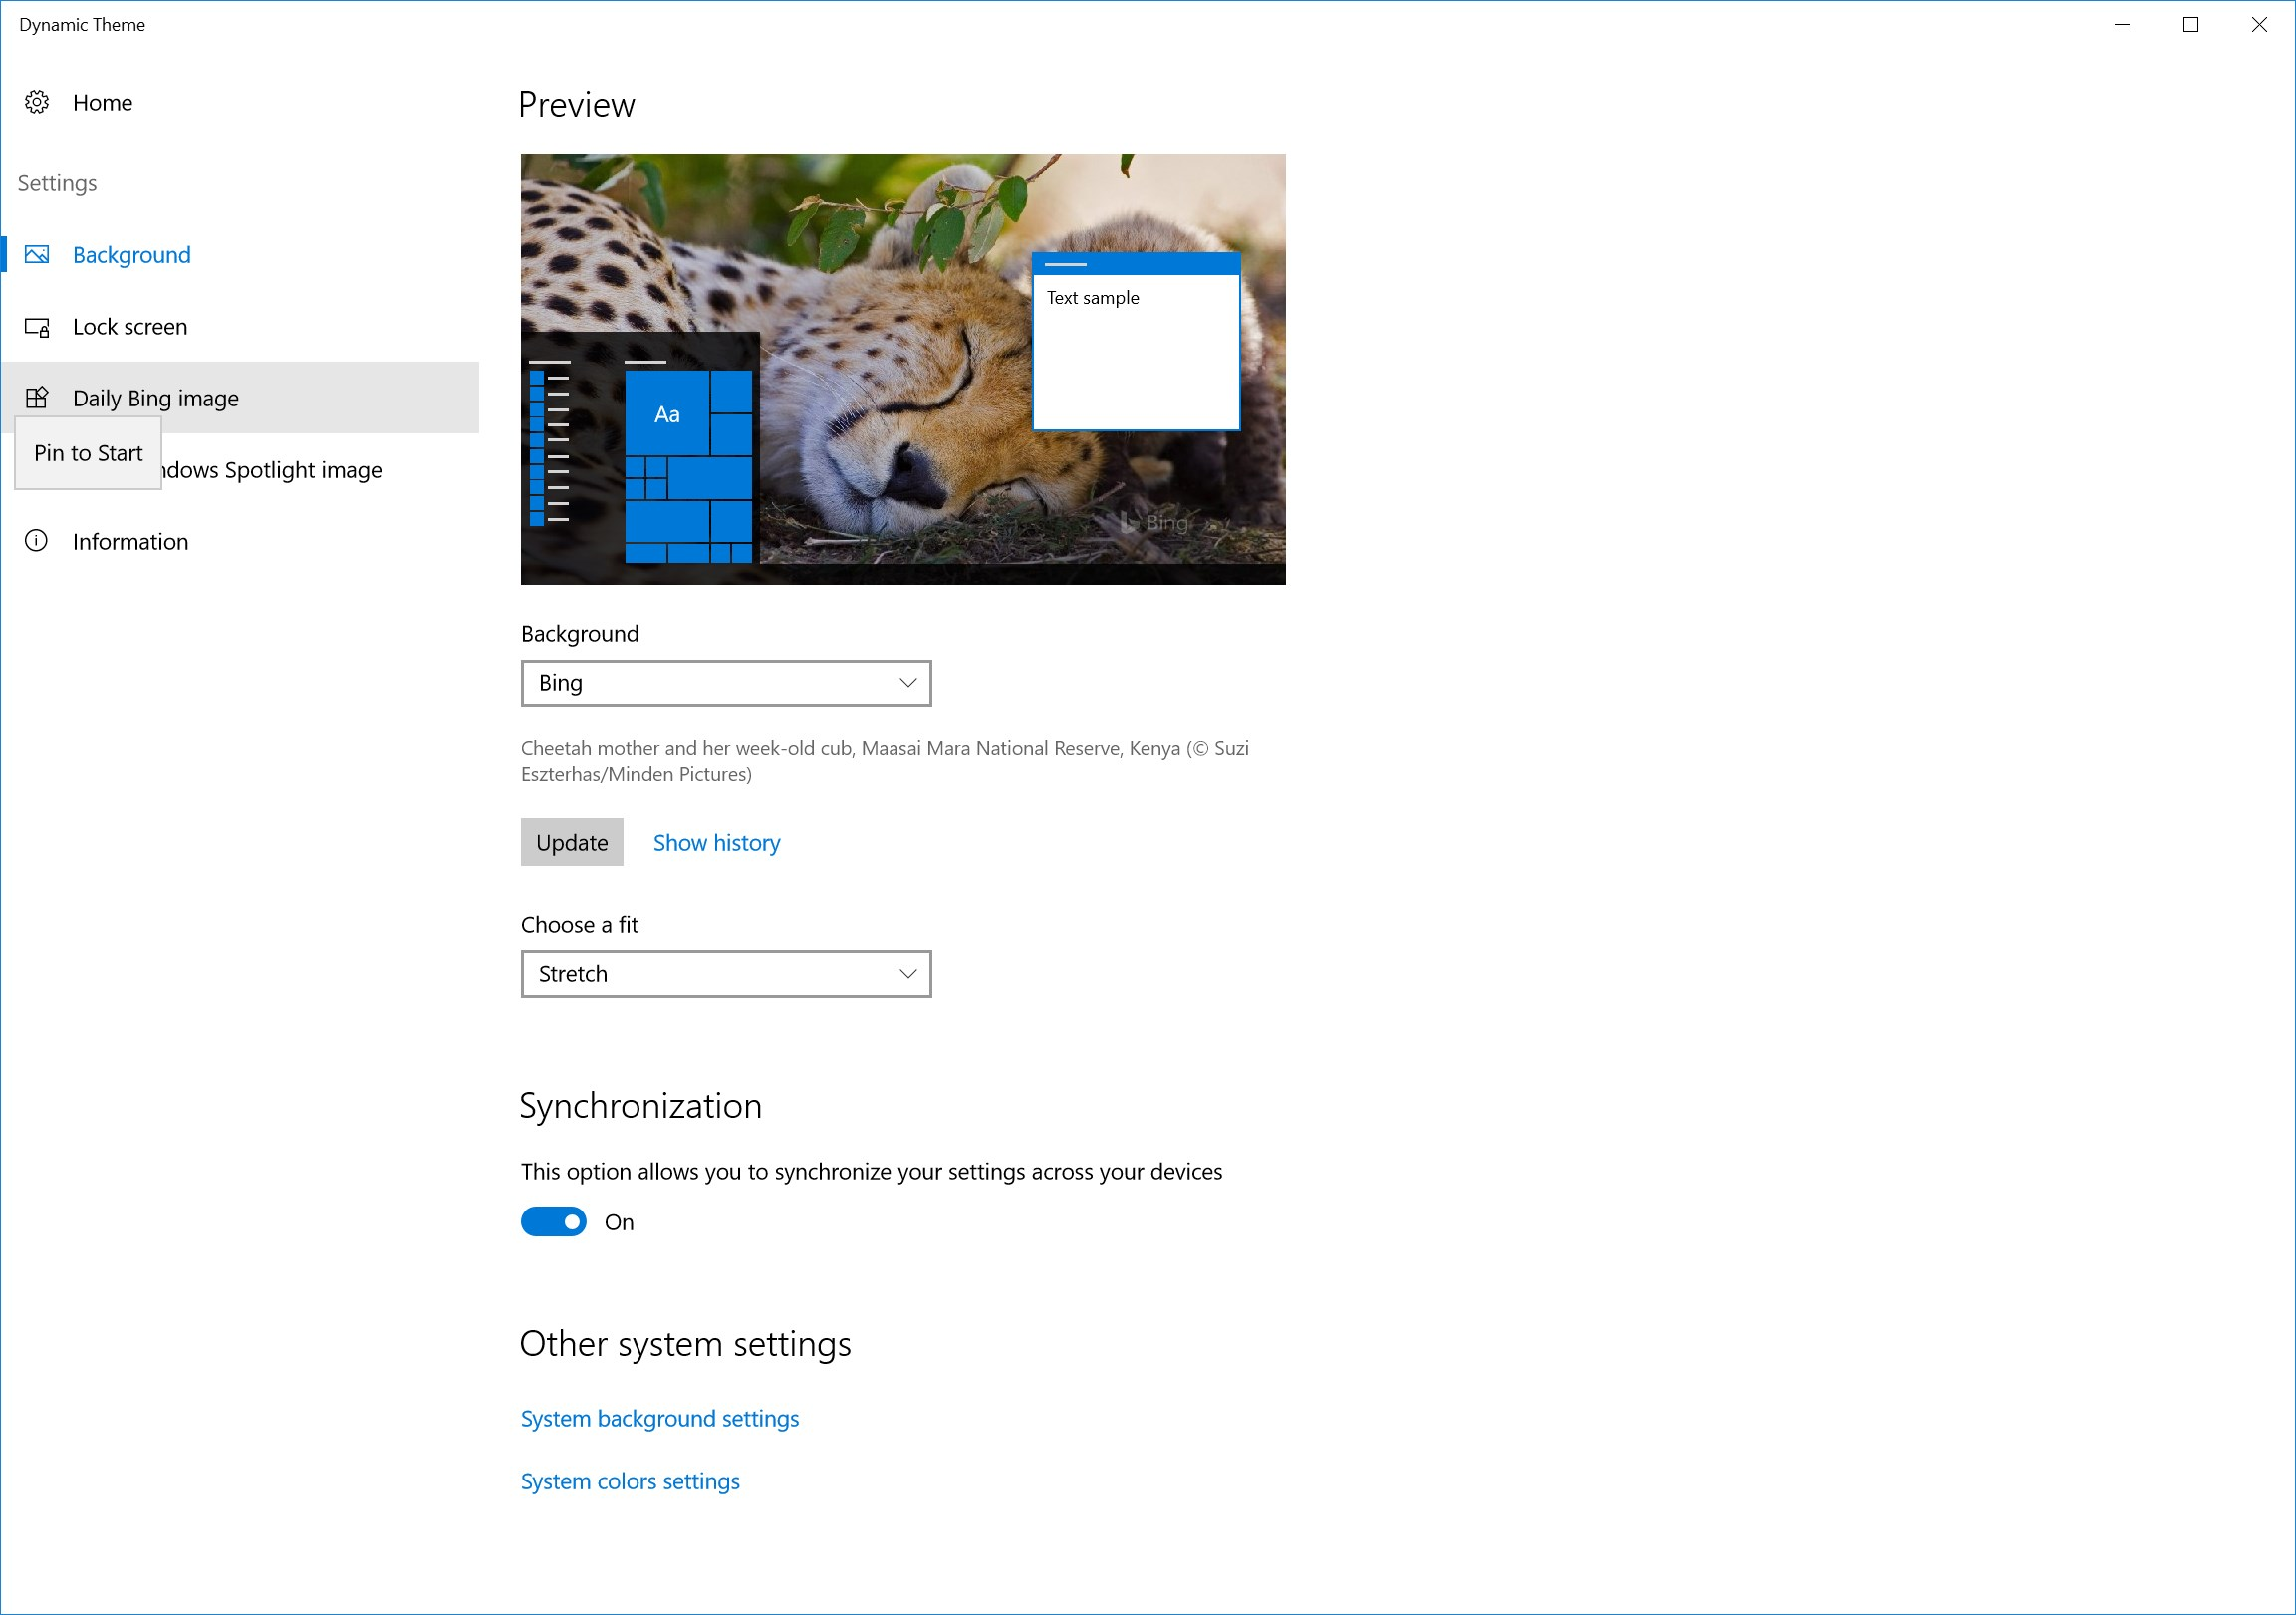 how to use dynamic theme windows 10 app